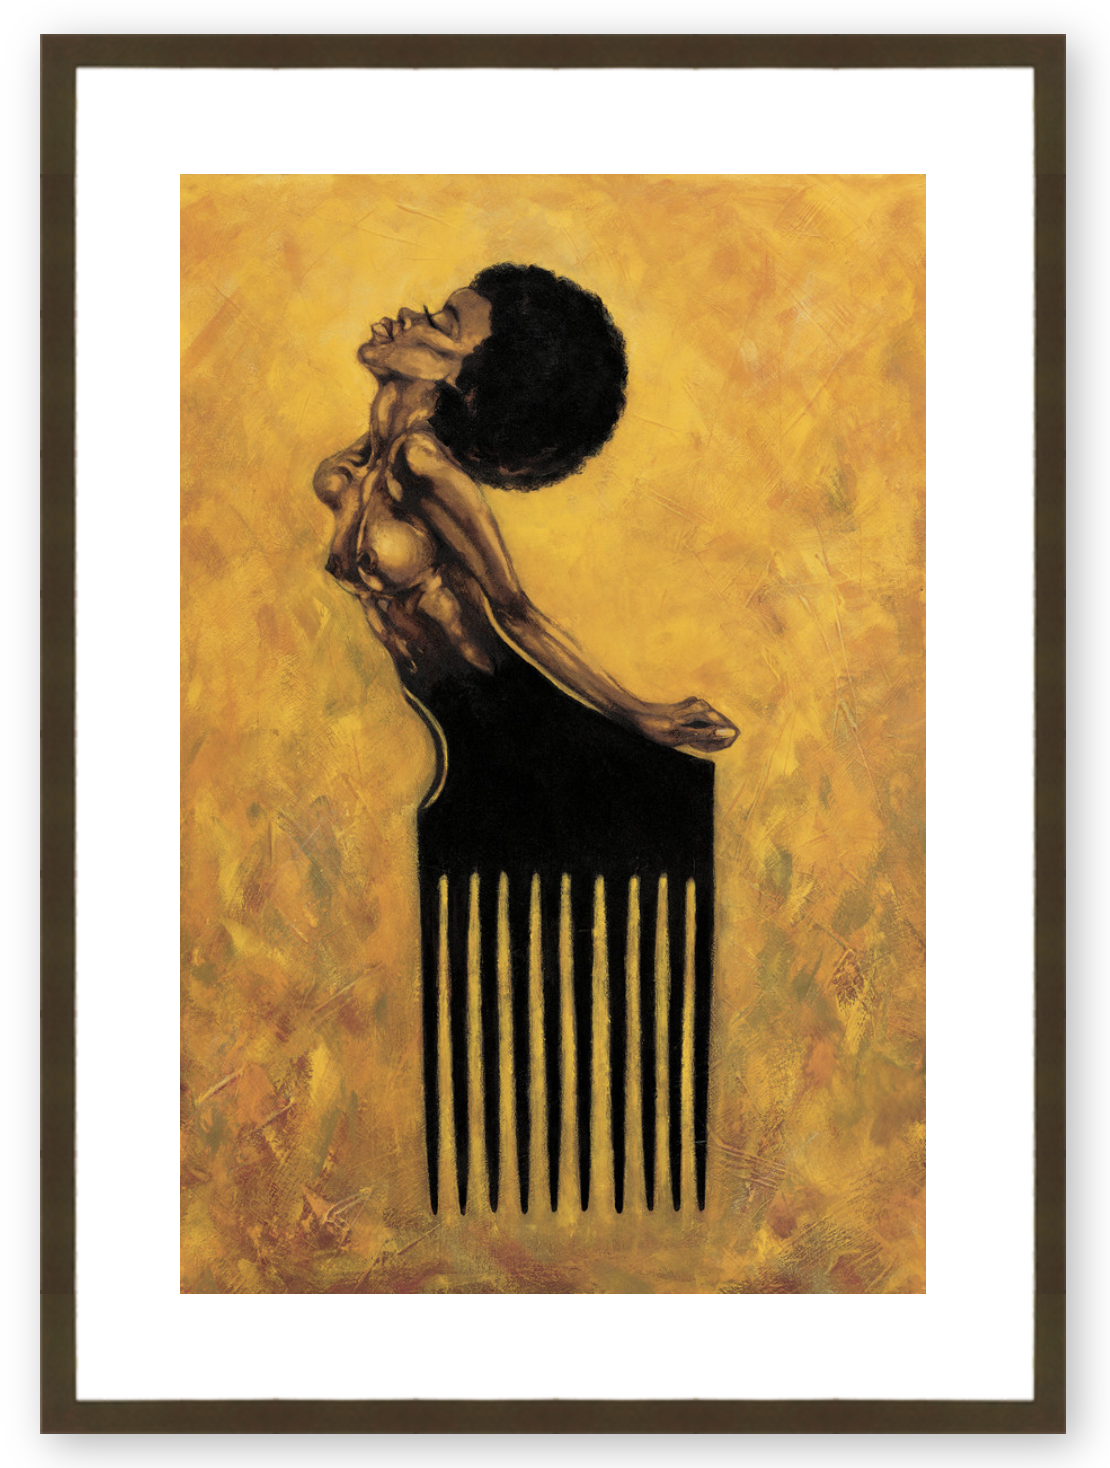 Soul Comb - Framed & Ready to Hang